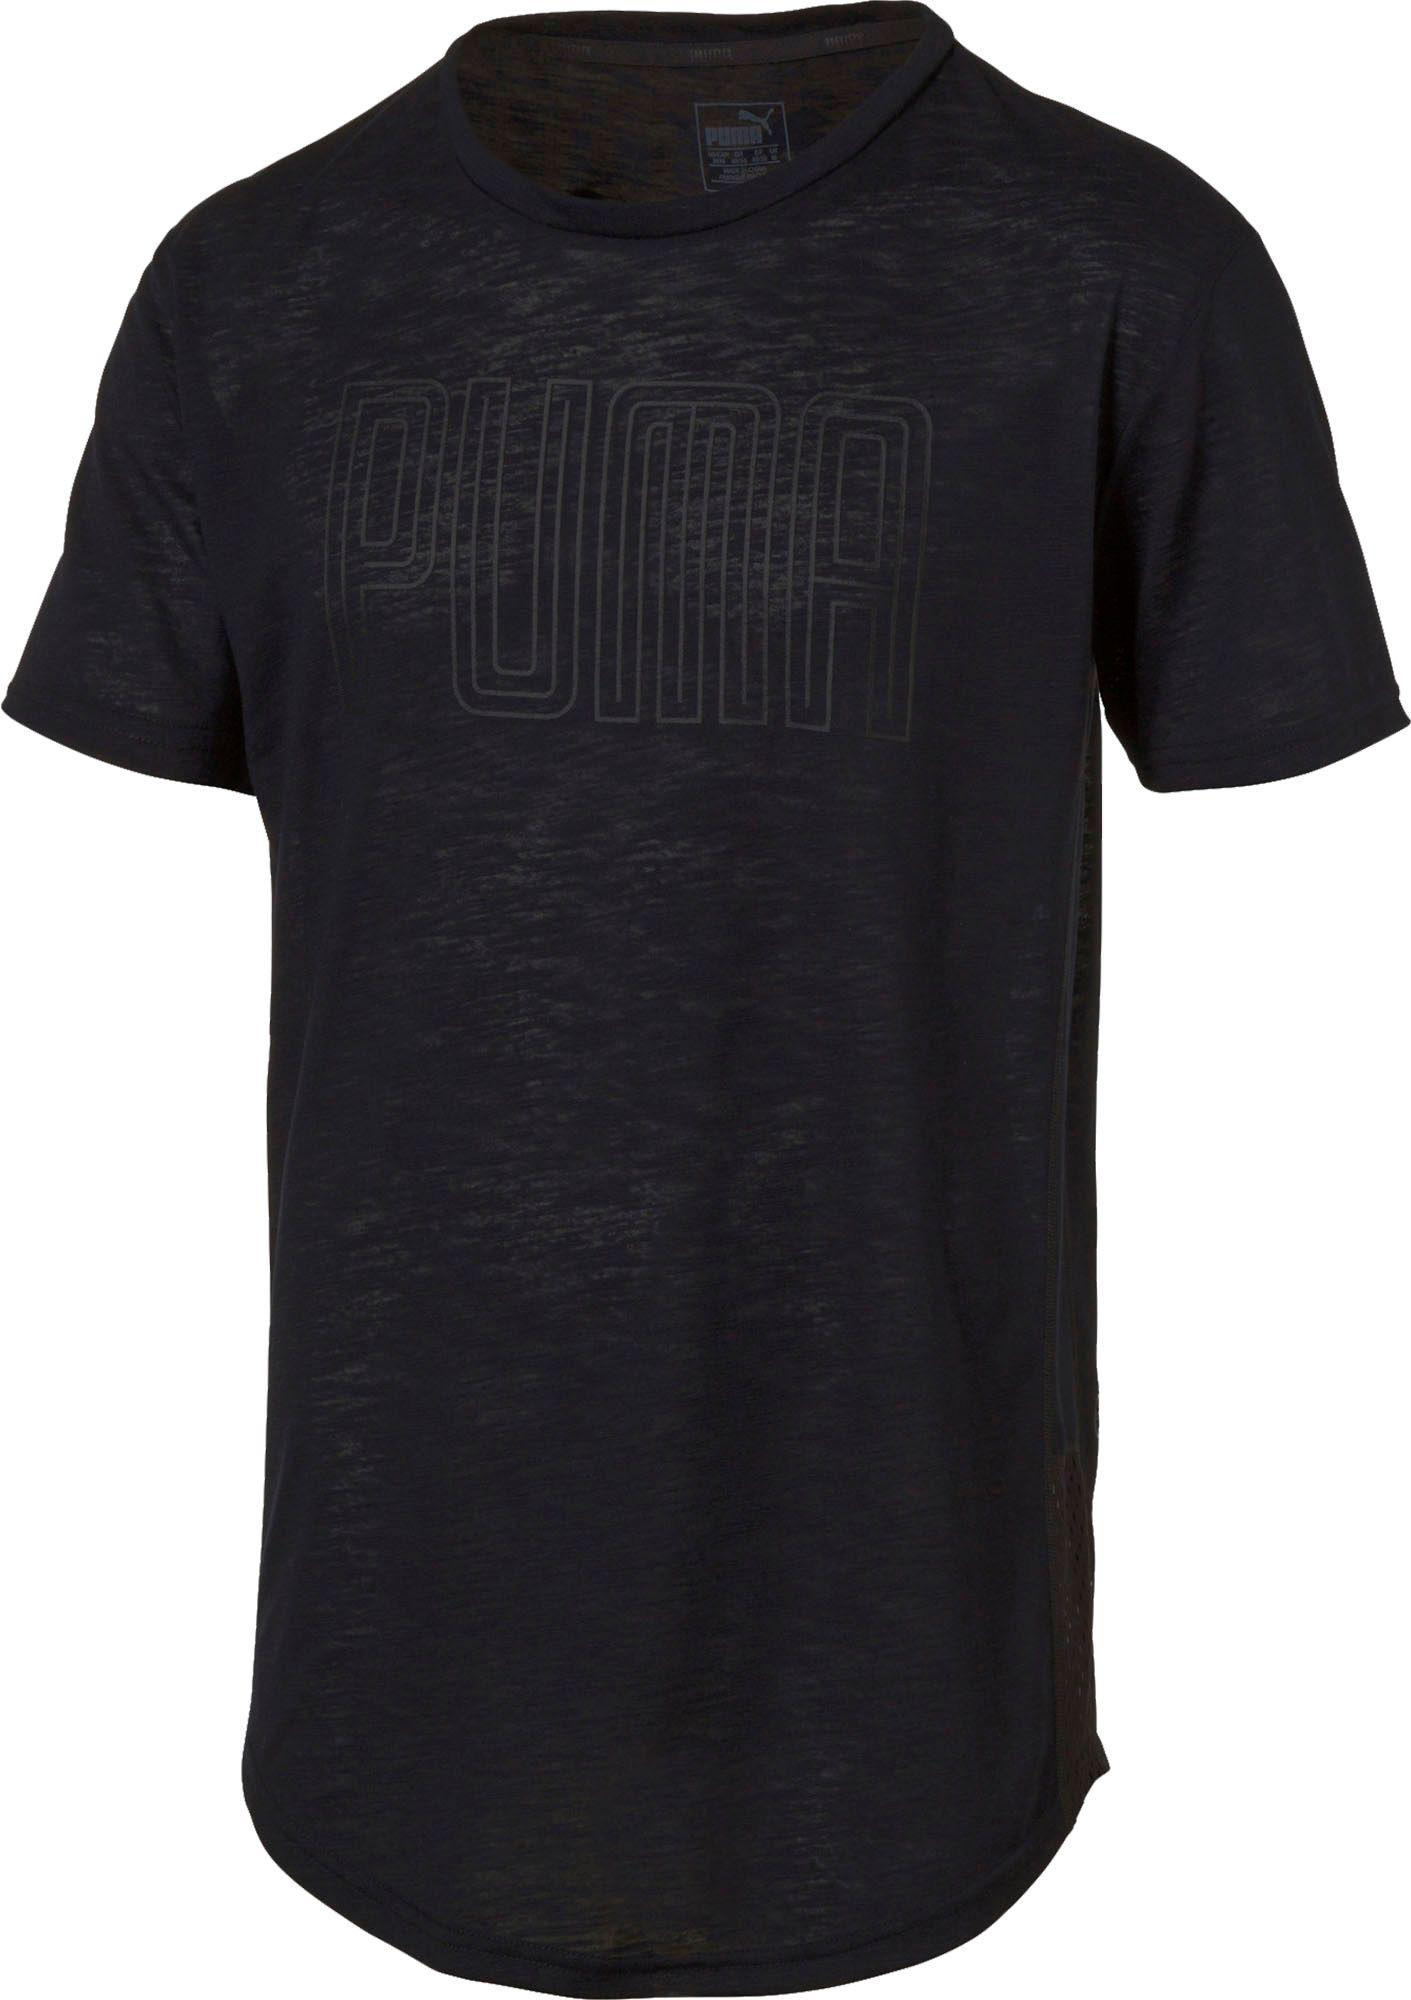 00e2880c4 Lyst - Puma Dri-release Novelty Graphic T-shirt in Black for Men